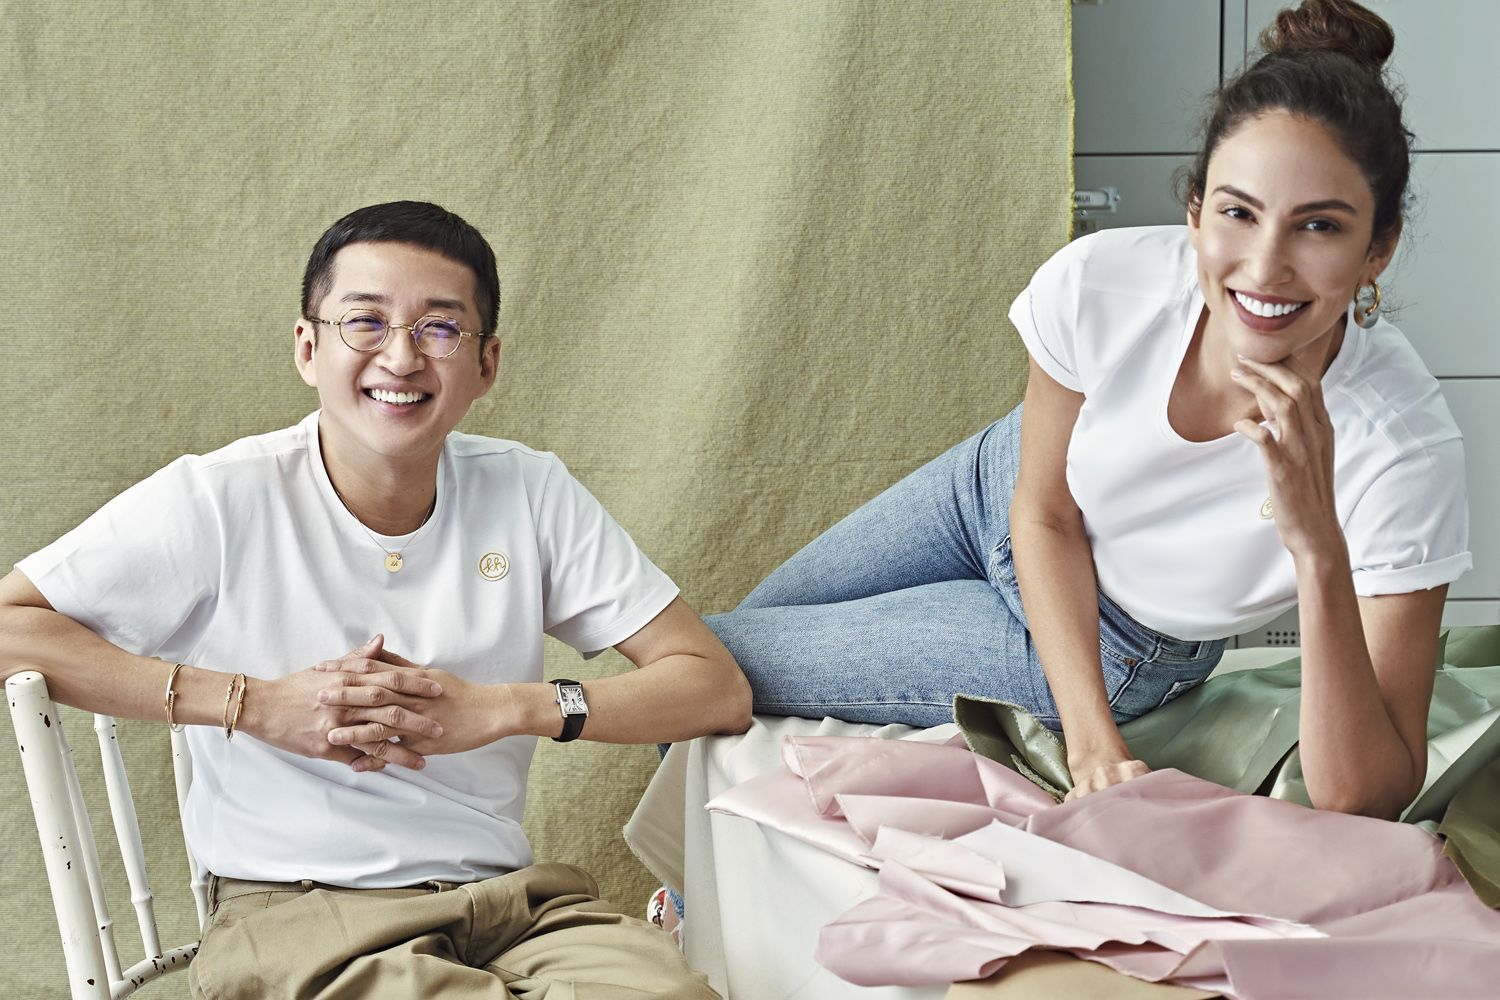 What To Know About Fugeelah By Khoon Hooi, A Stylish Collaboration That Empowers Lives